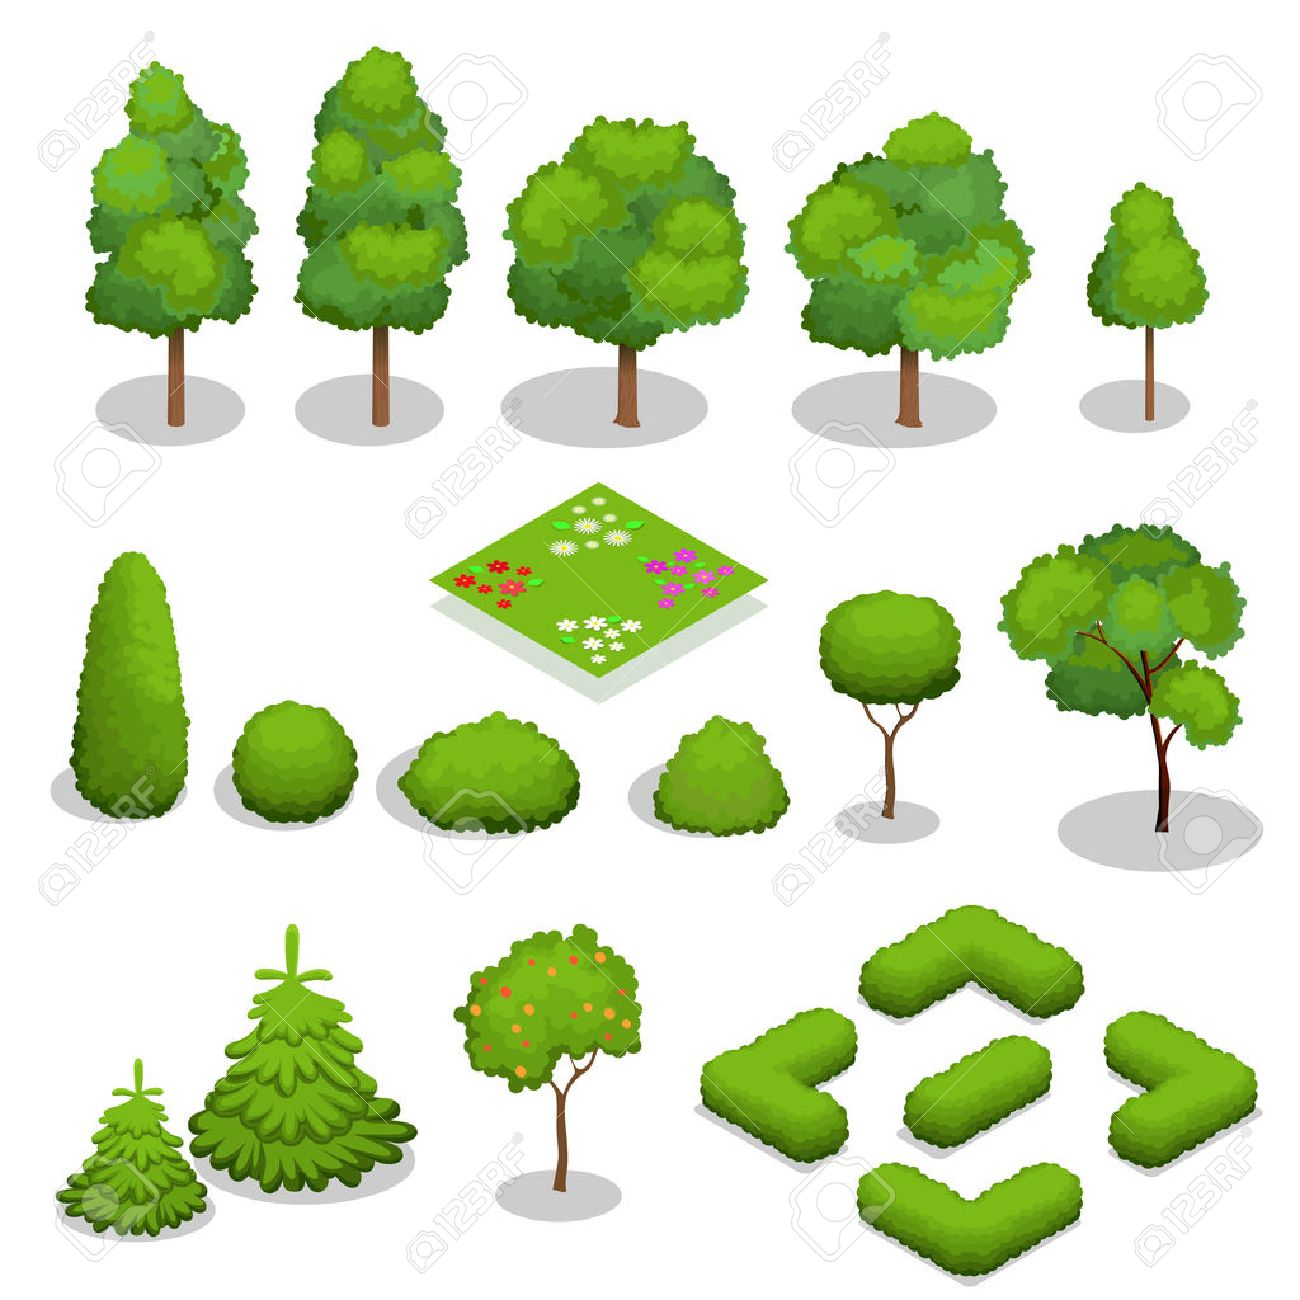 Isometric trees elements for landscape design. green trees and bushes isolated on white - 51237379